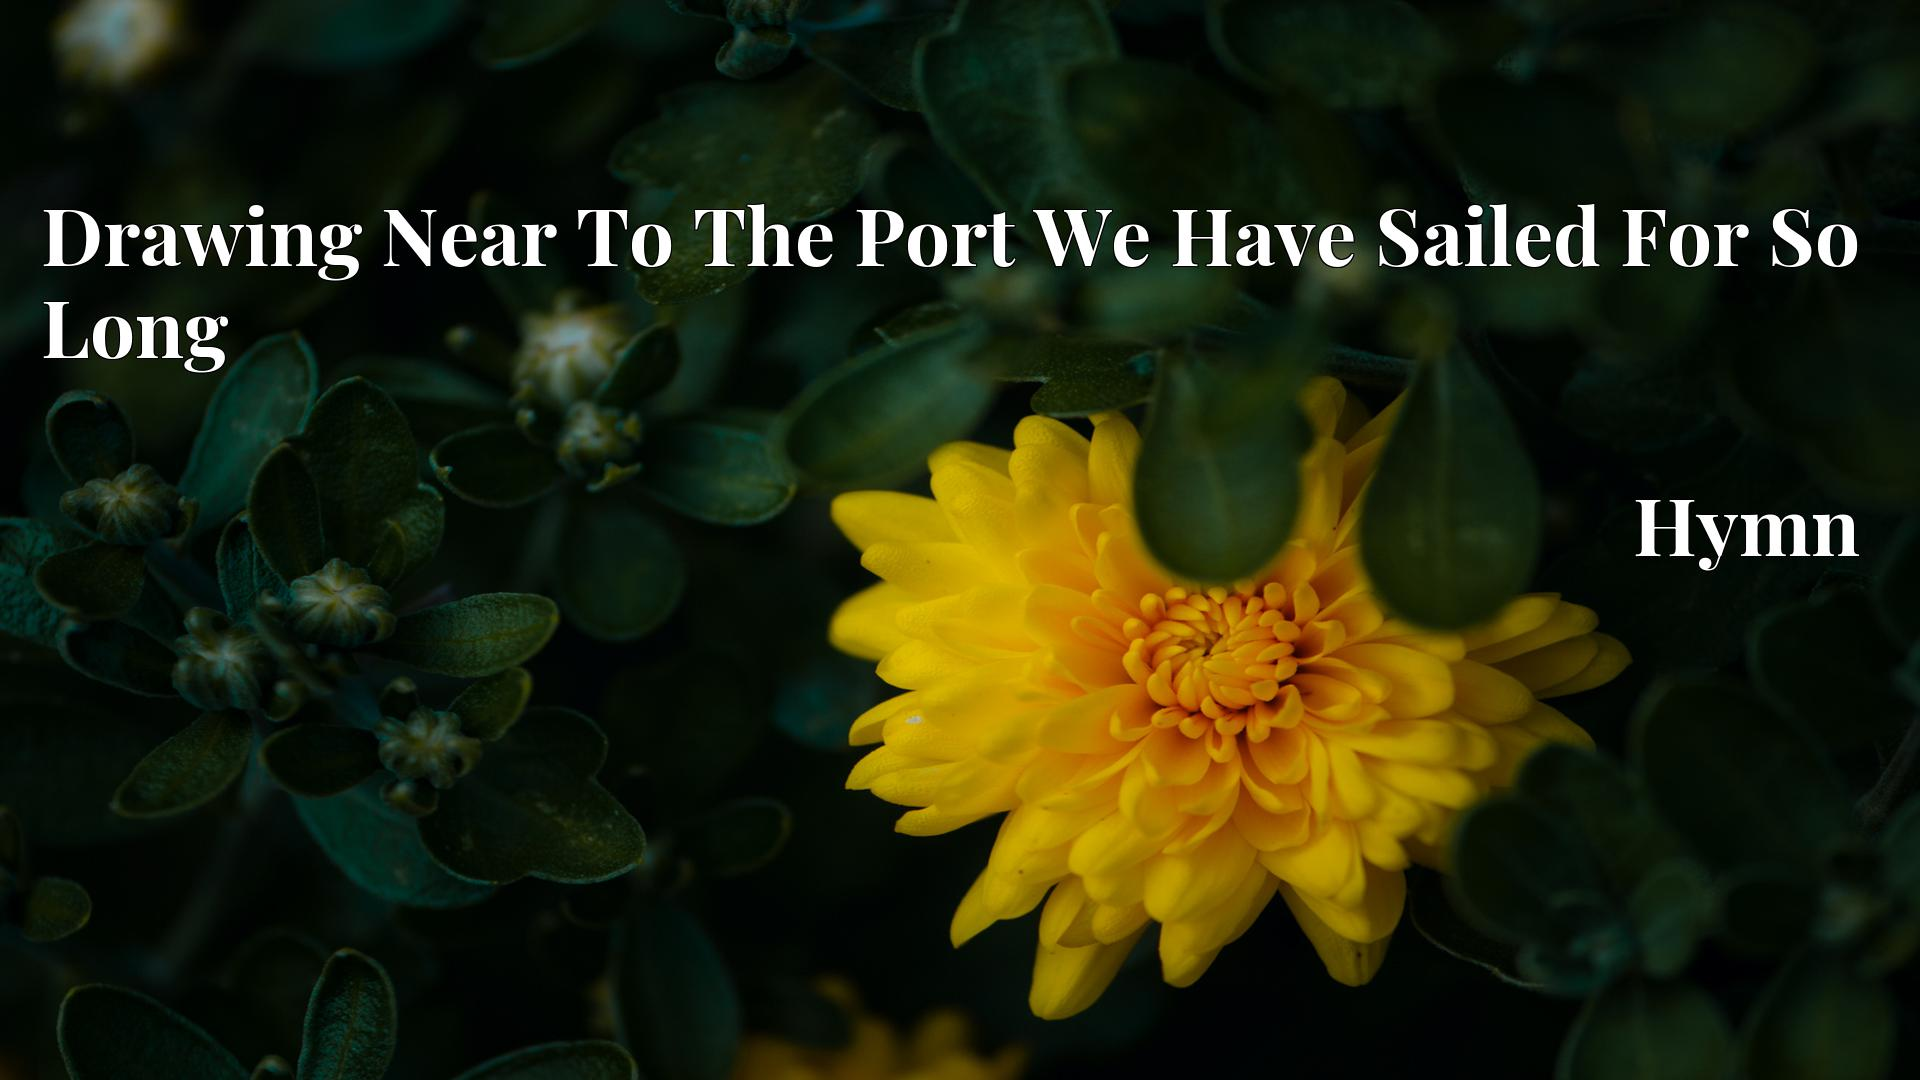 Drawing Near To The Port We Have Sailed For So Long - Hymn